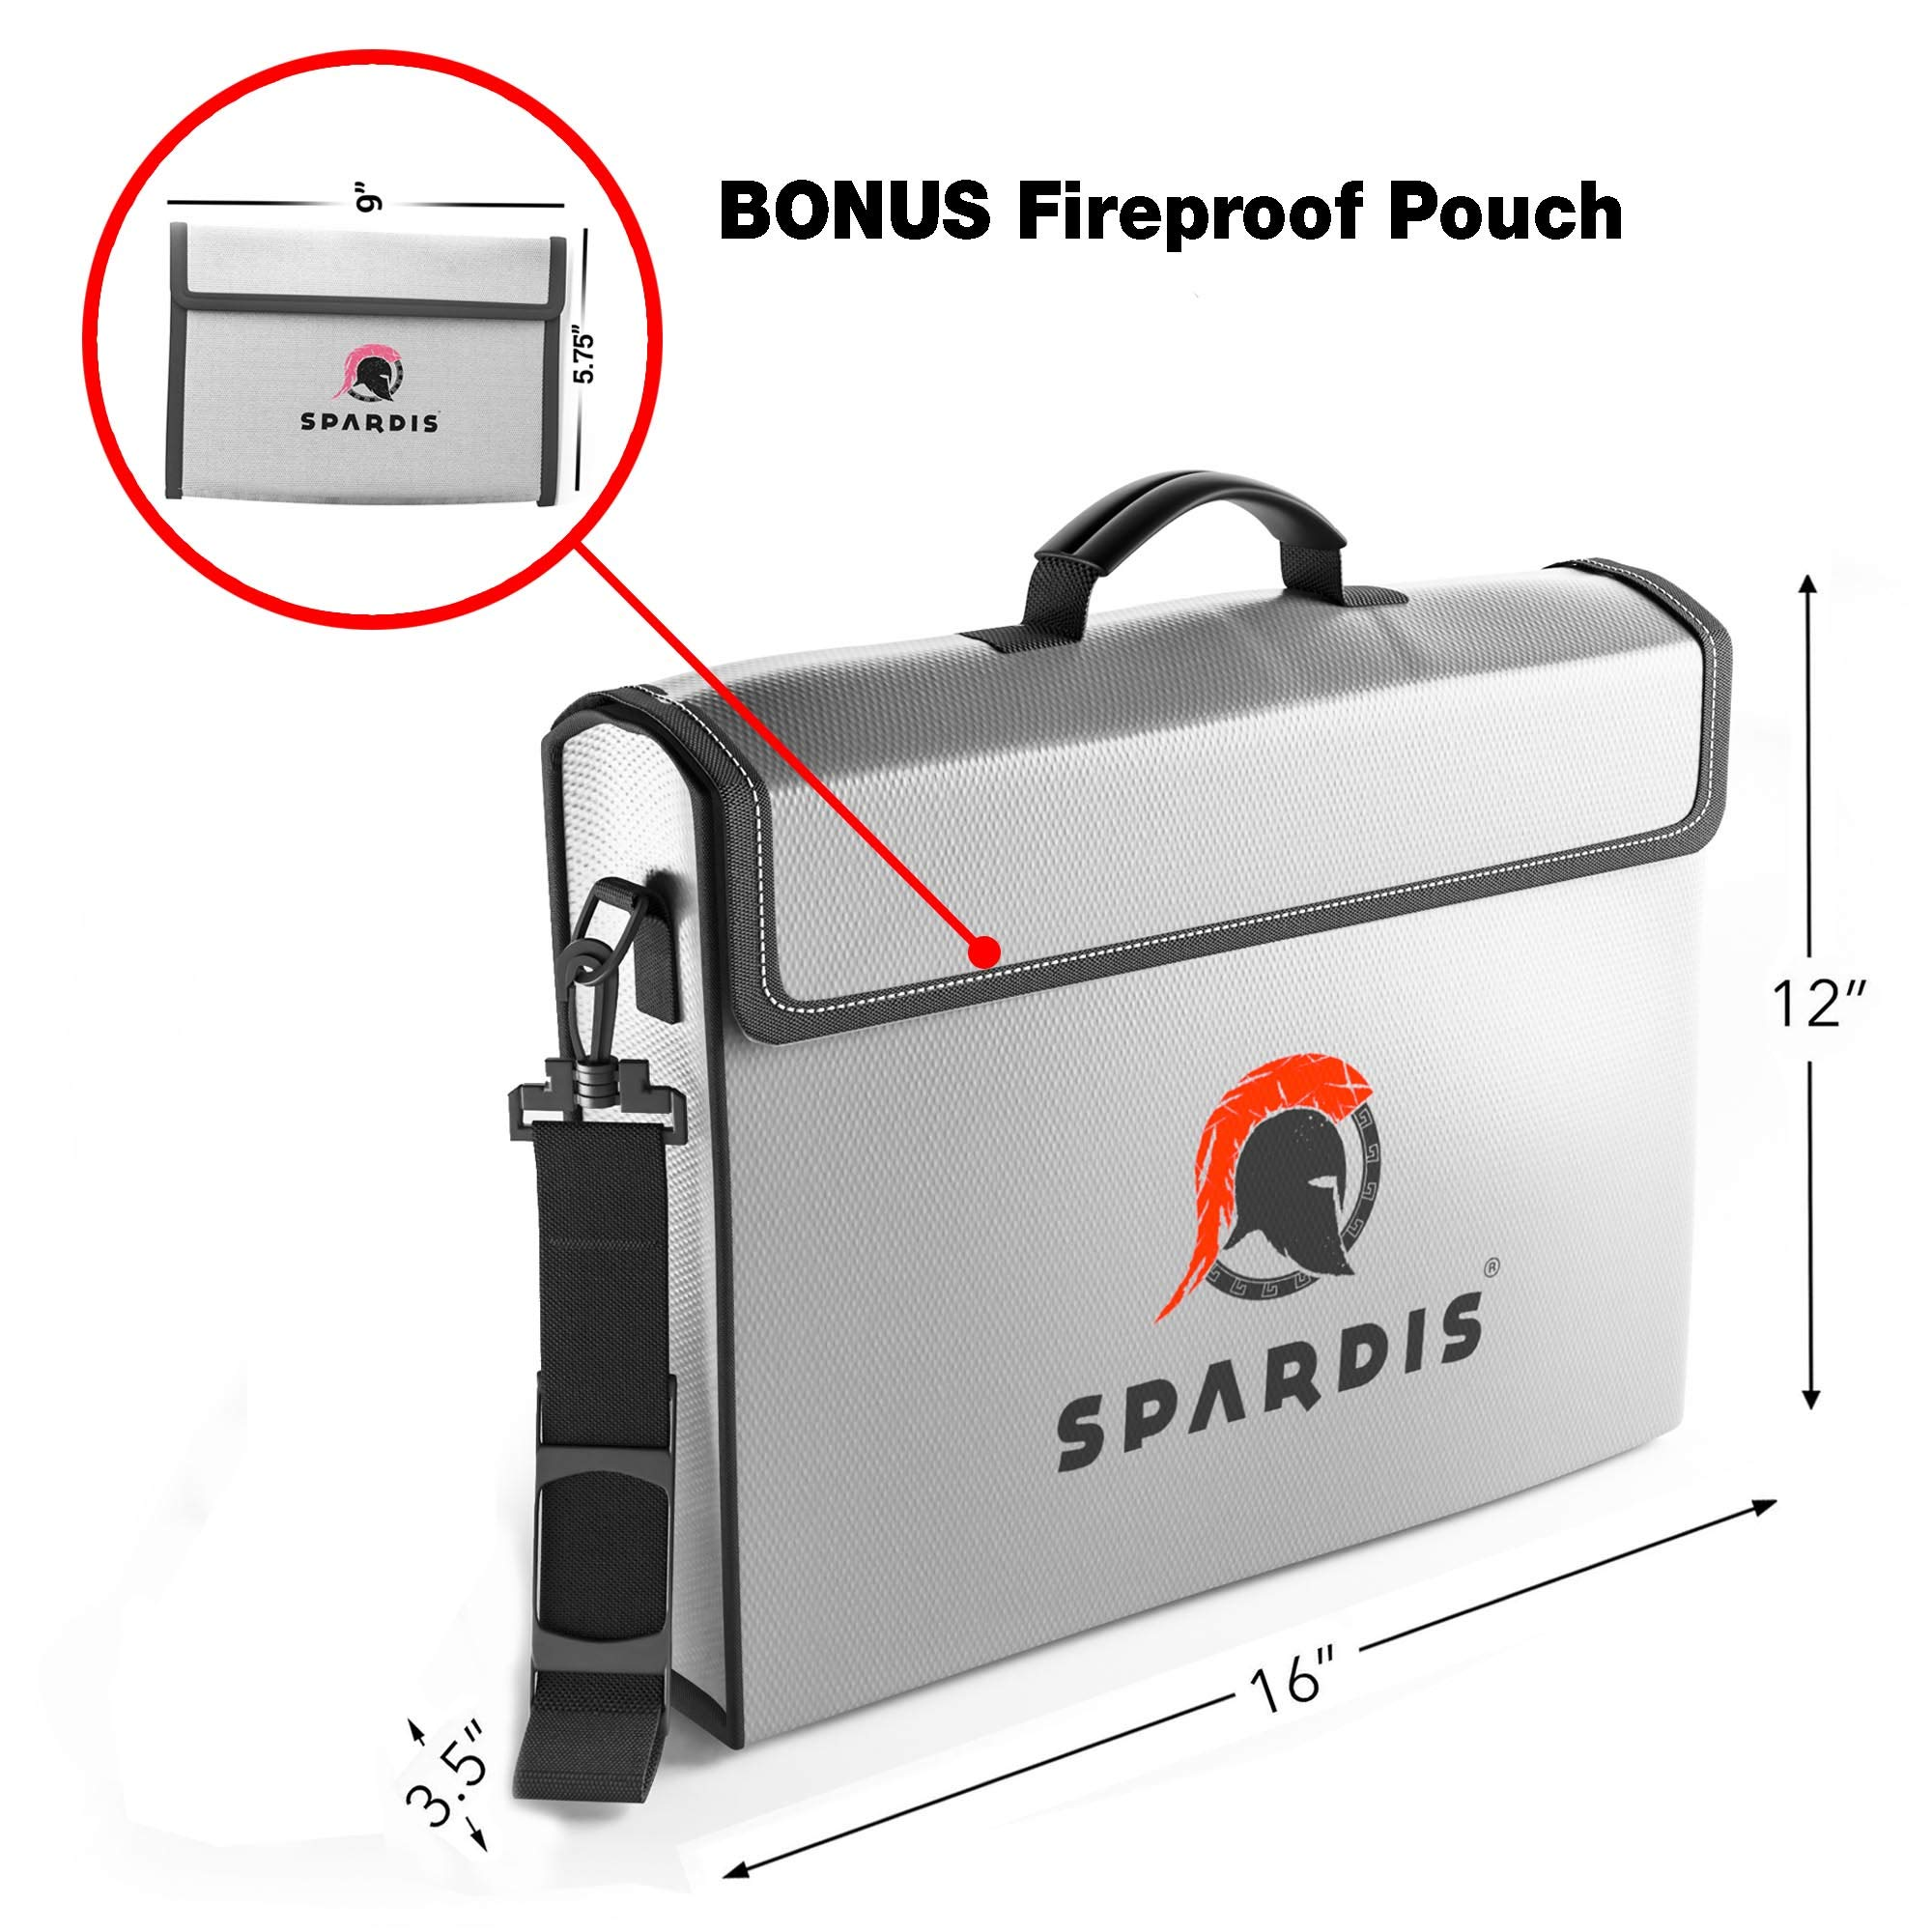 Spardis XXL (16'' x 12'' x 3.5'') Fireproof Document Safe Bag with Locking Zipper - Heat Resistant to 2100 F Degrees with Dual Layer Silicone Coated Fiberglass and Heat Blocking Aluminum by Spardis